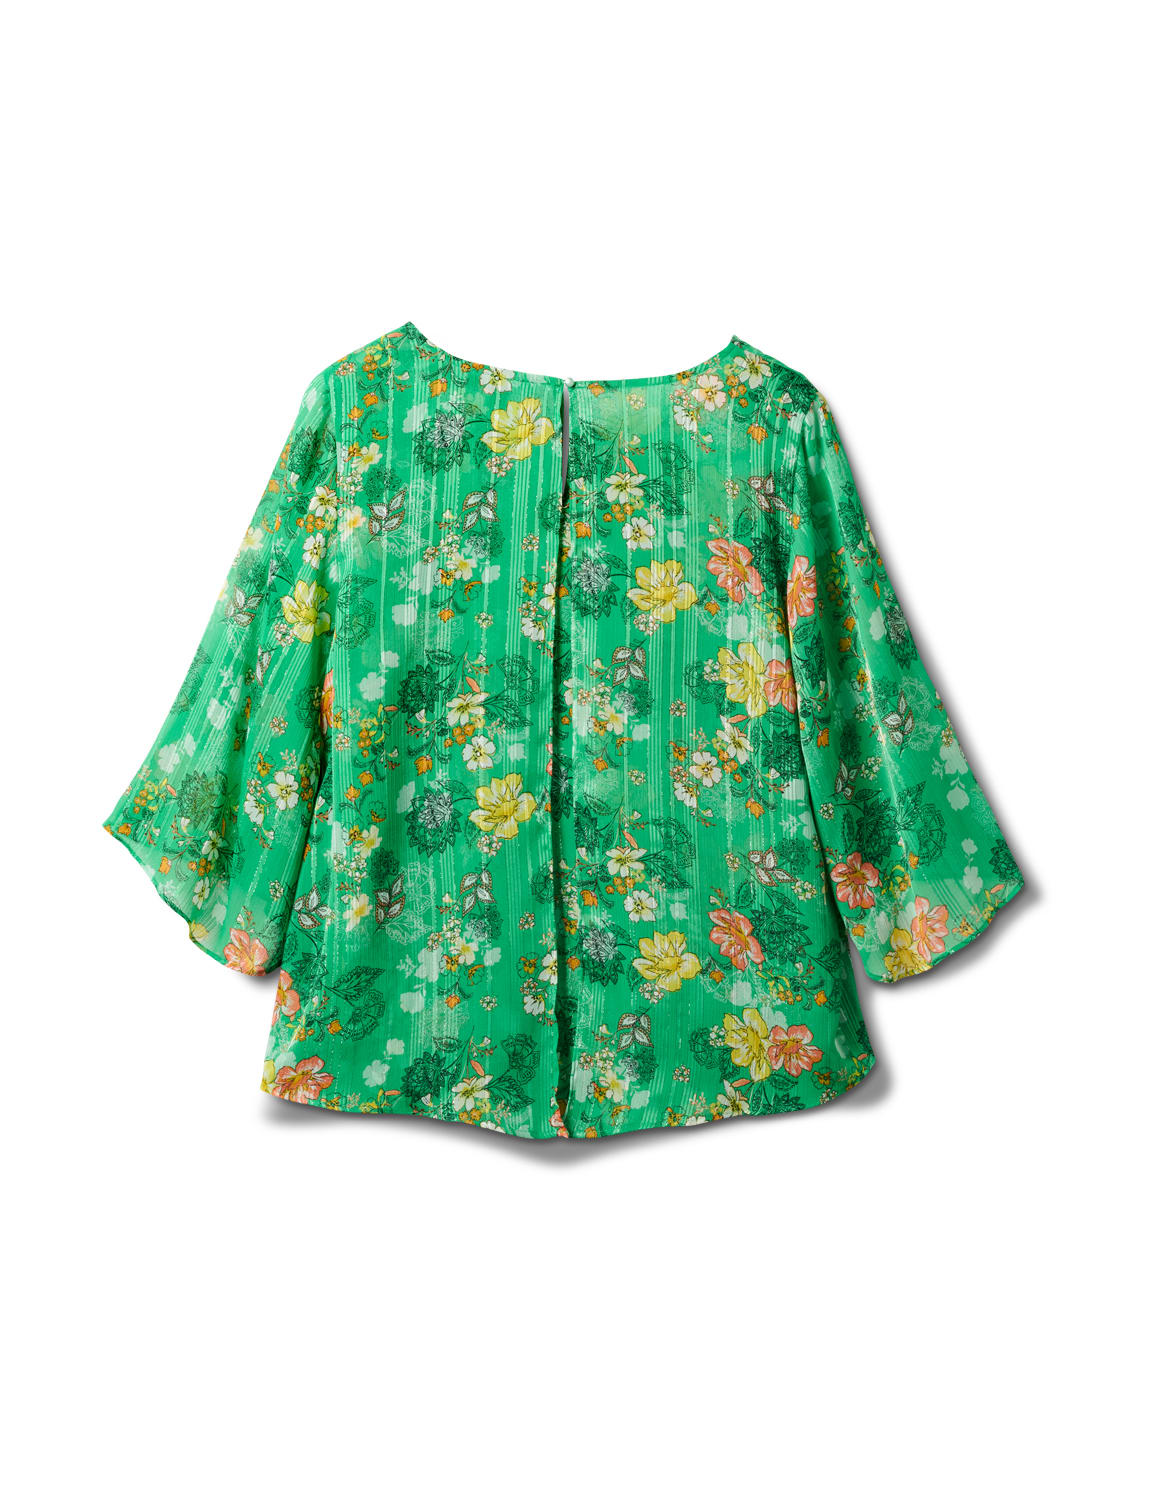 Green Floral Fly Away Back Blouse - Green - Back